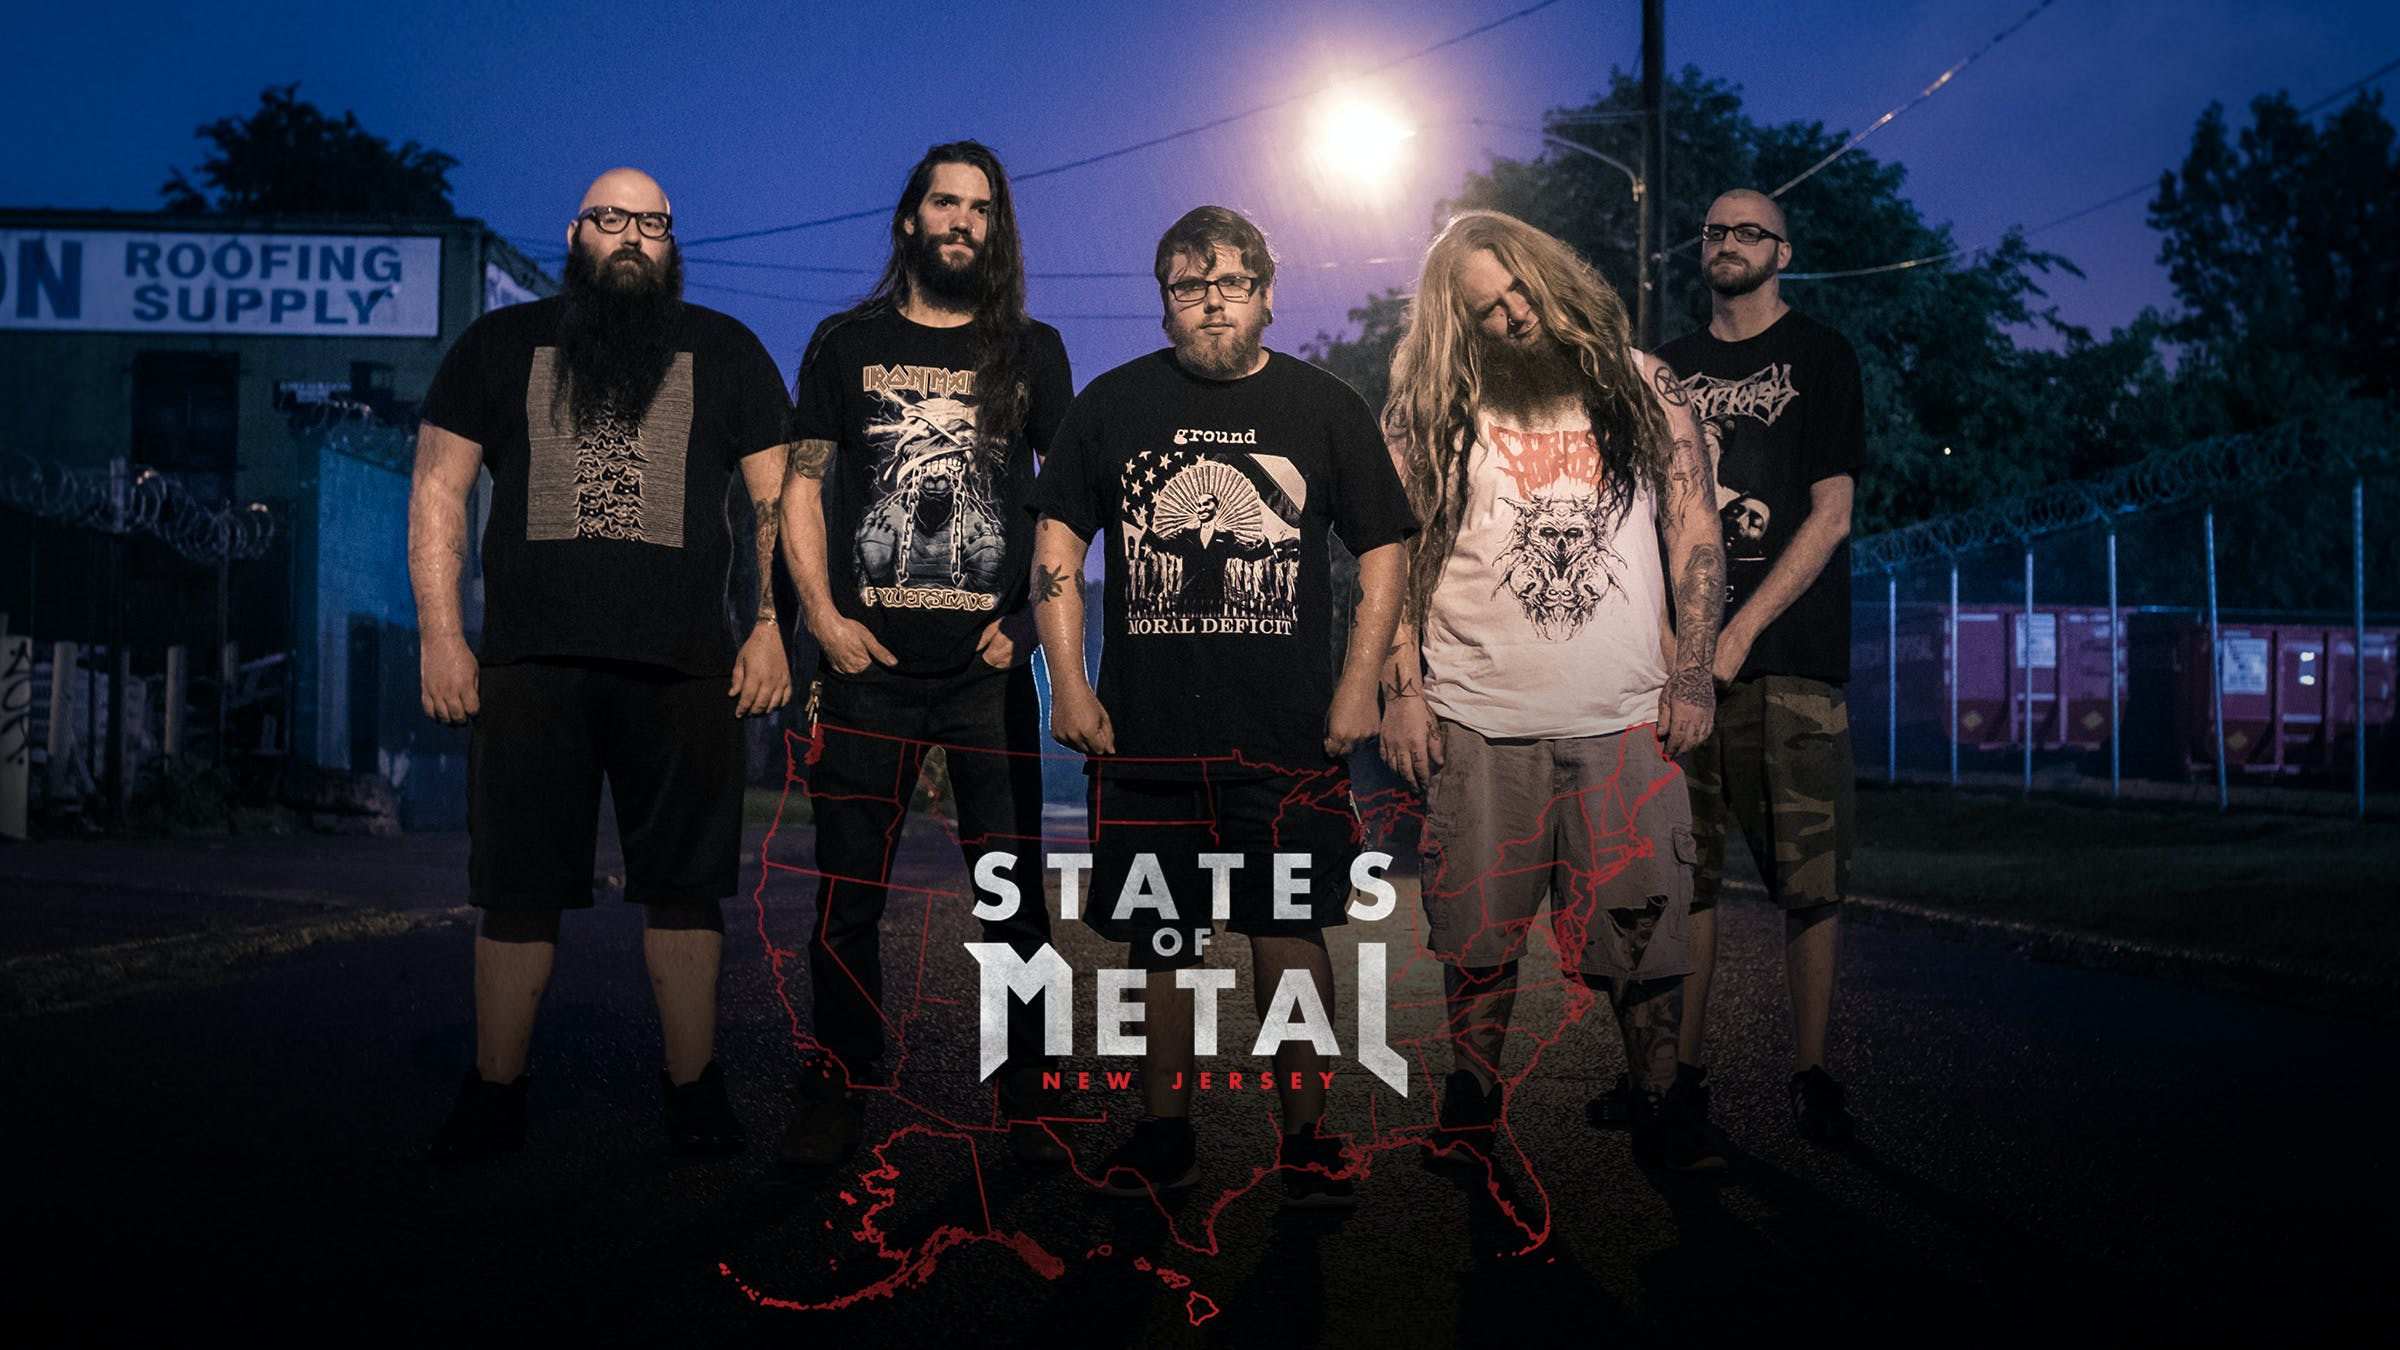 States Of Metal: New Jersey Is A Blue-Collar Breeding Ground for Heavy Metal Innovation